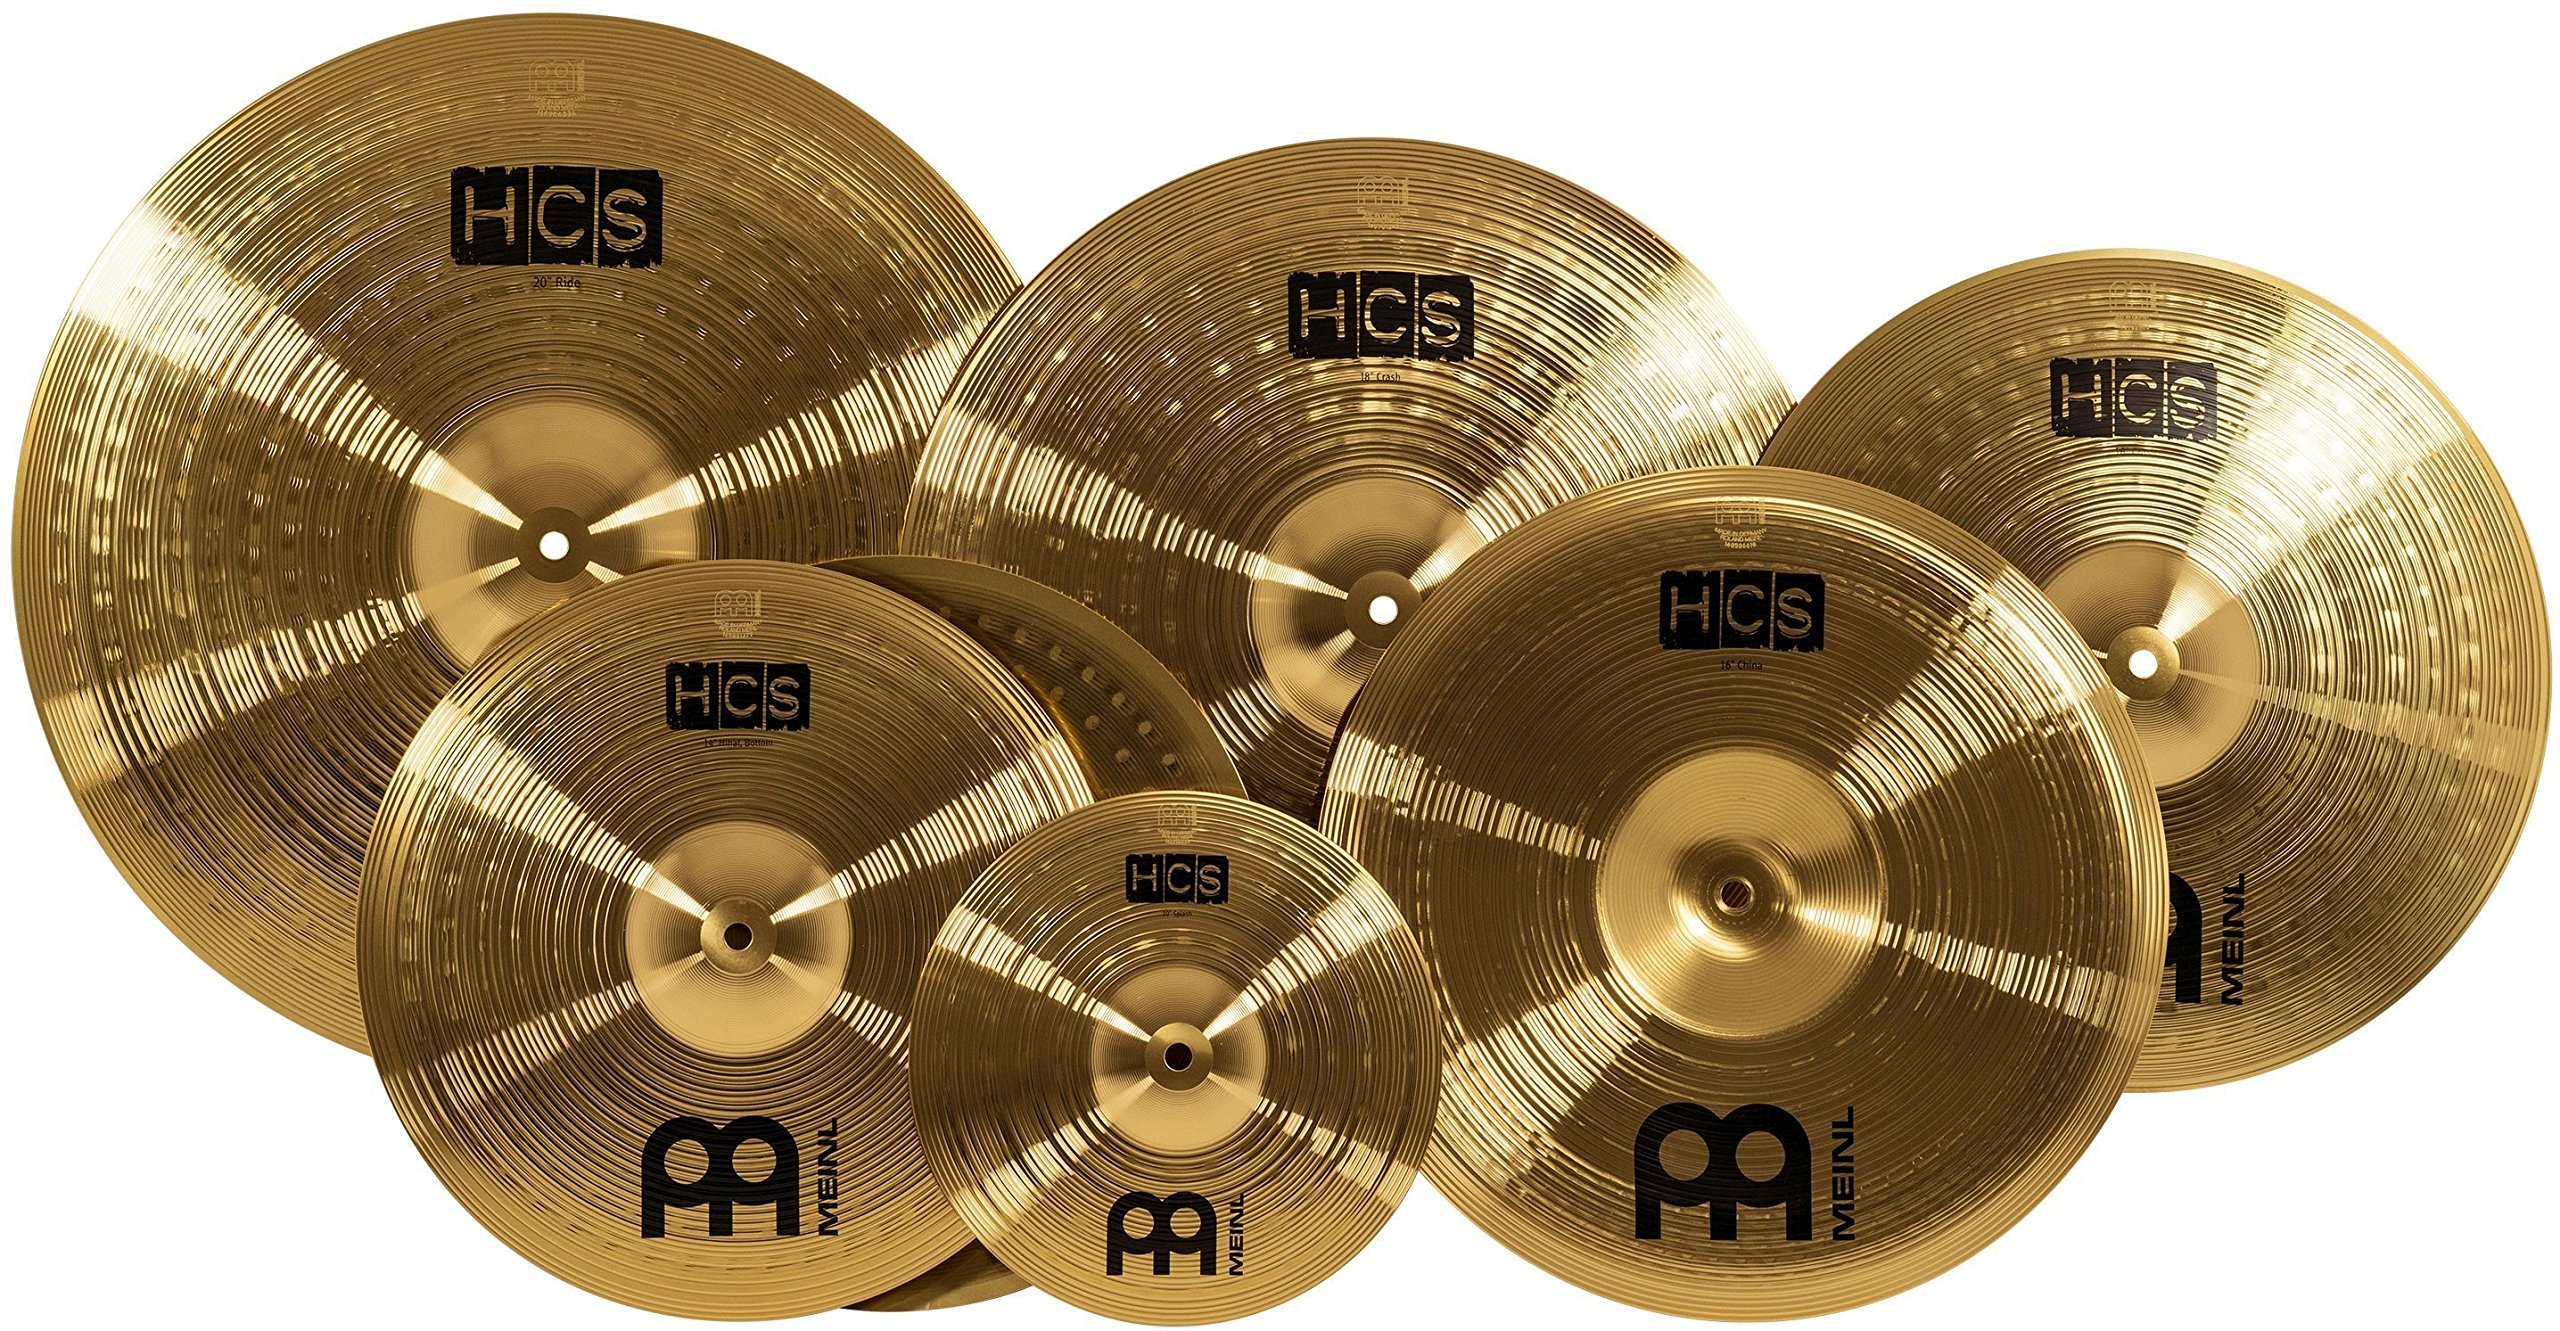 Meinl Cymbals HCS-SCS ''Super Set'' Matched Cymbal Box Set Pack with Hi-Hat, Ride, Two Crashes, China, and Splash Cymbal (VIDEO)